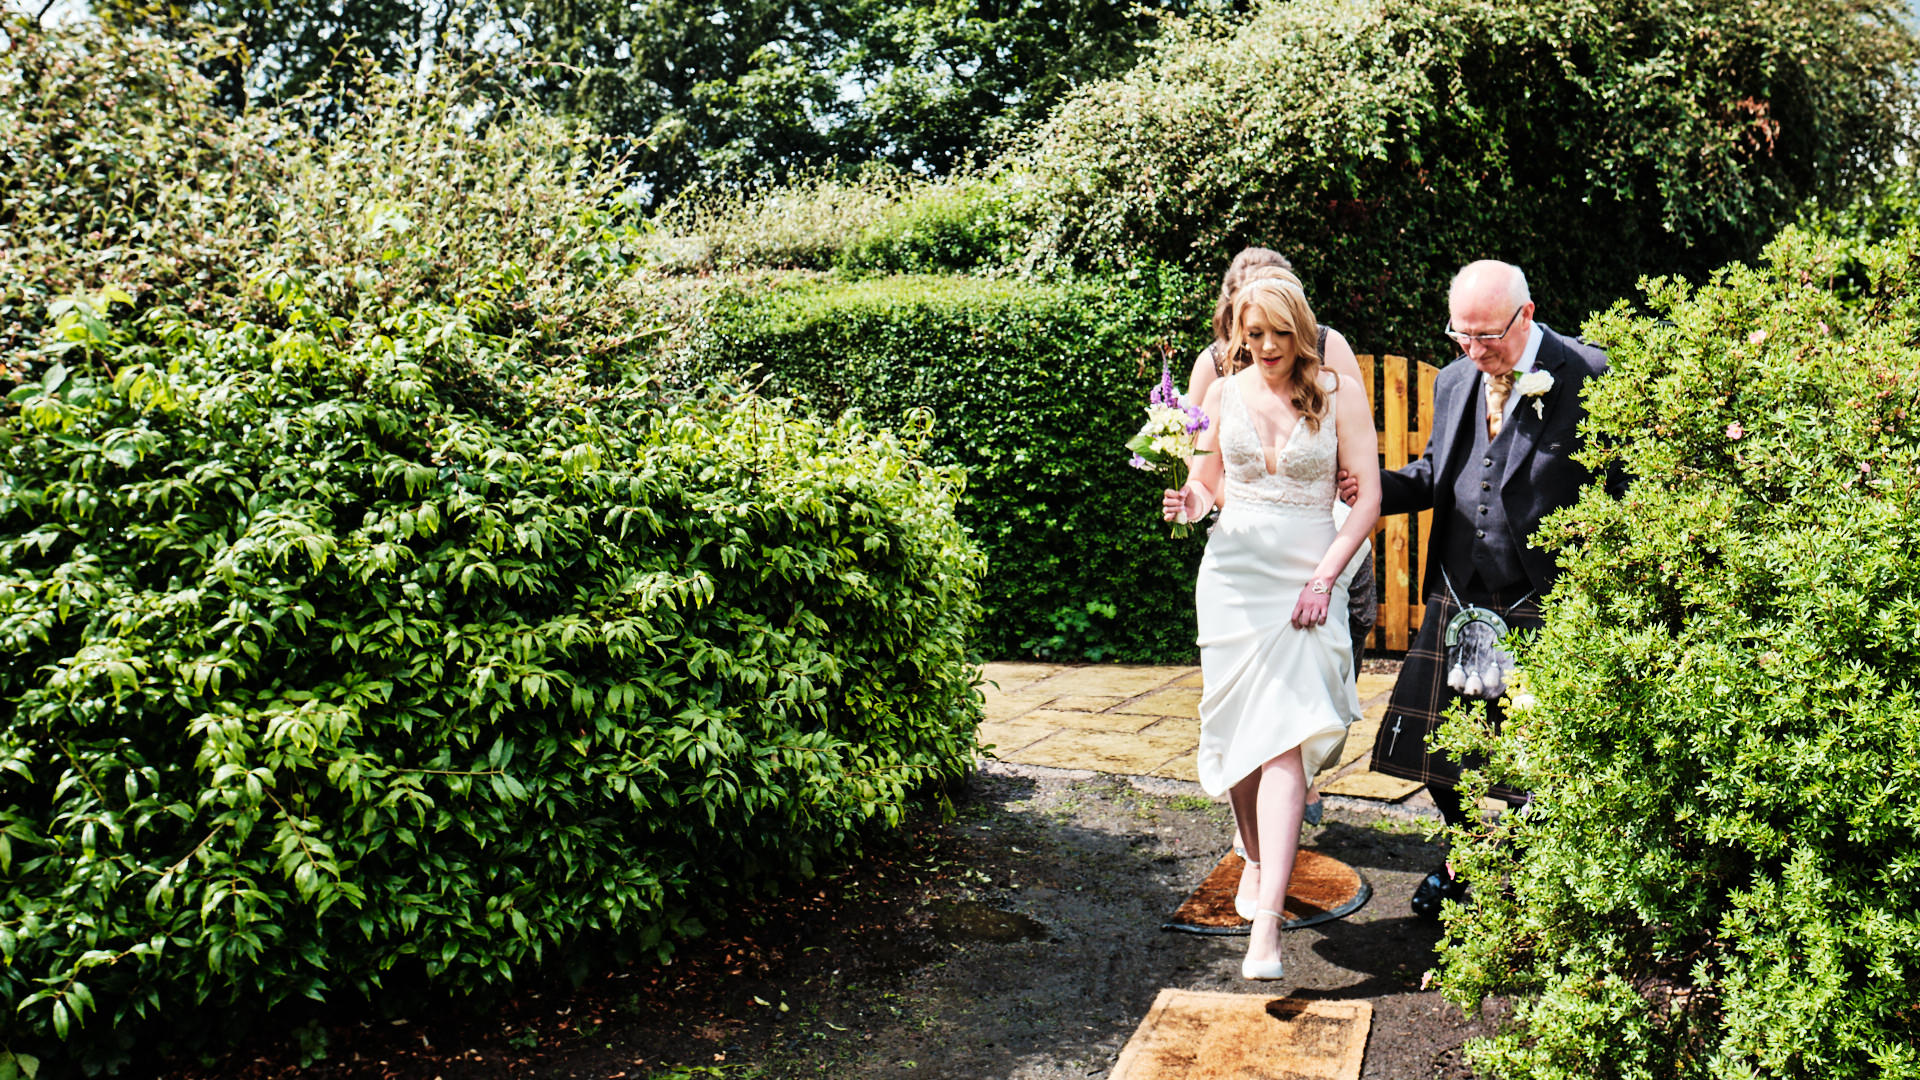 colour photograph of the bride and her dad walking to the wedding ceremony in her garden